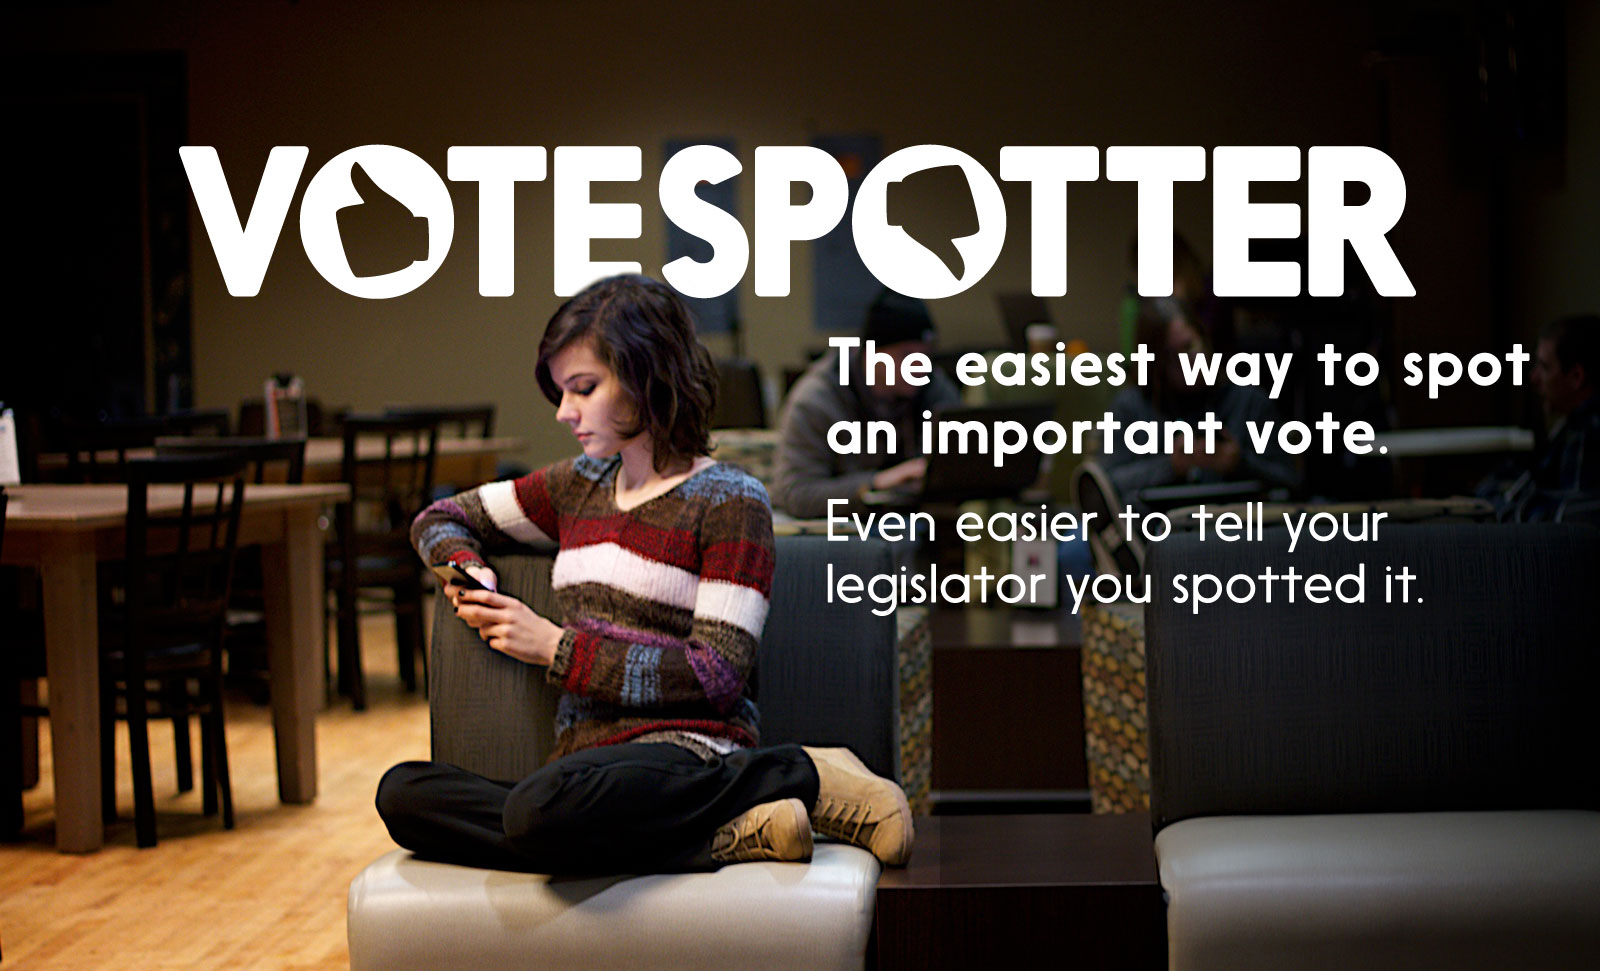 VoteSpotter: The easiest way to spot an important vote. Even easier to tell your legislator you spotted it.